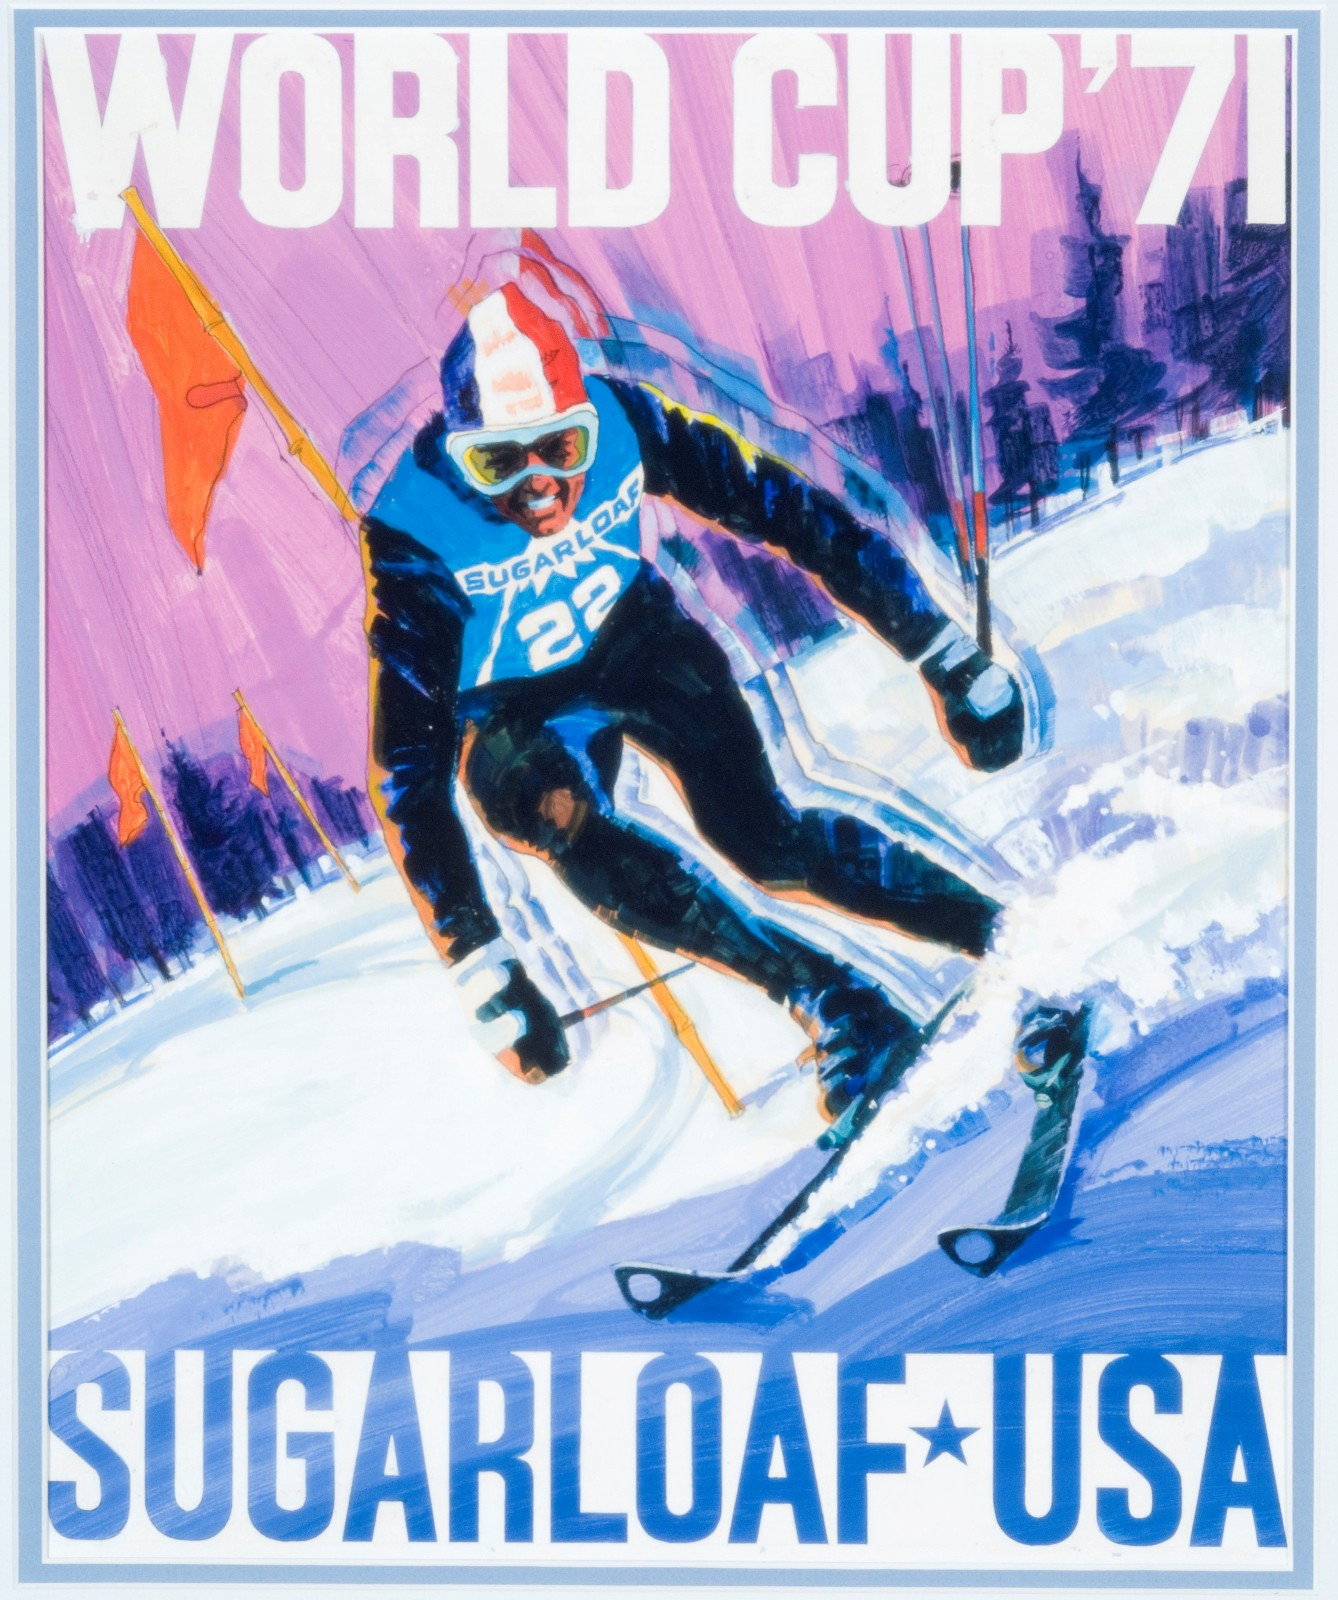 Preview of the next exhibit - Tall Timber Classic - 50th Anniversary of Maine's 1971 World Cup Ski Races at Sugarloaf. For more images, go to our Virtual Tours/Exhibits page.